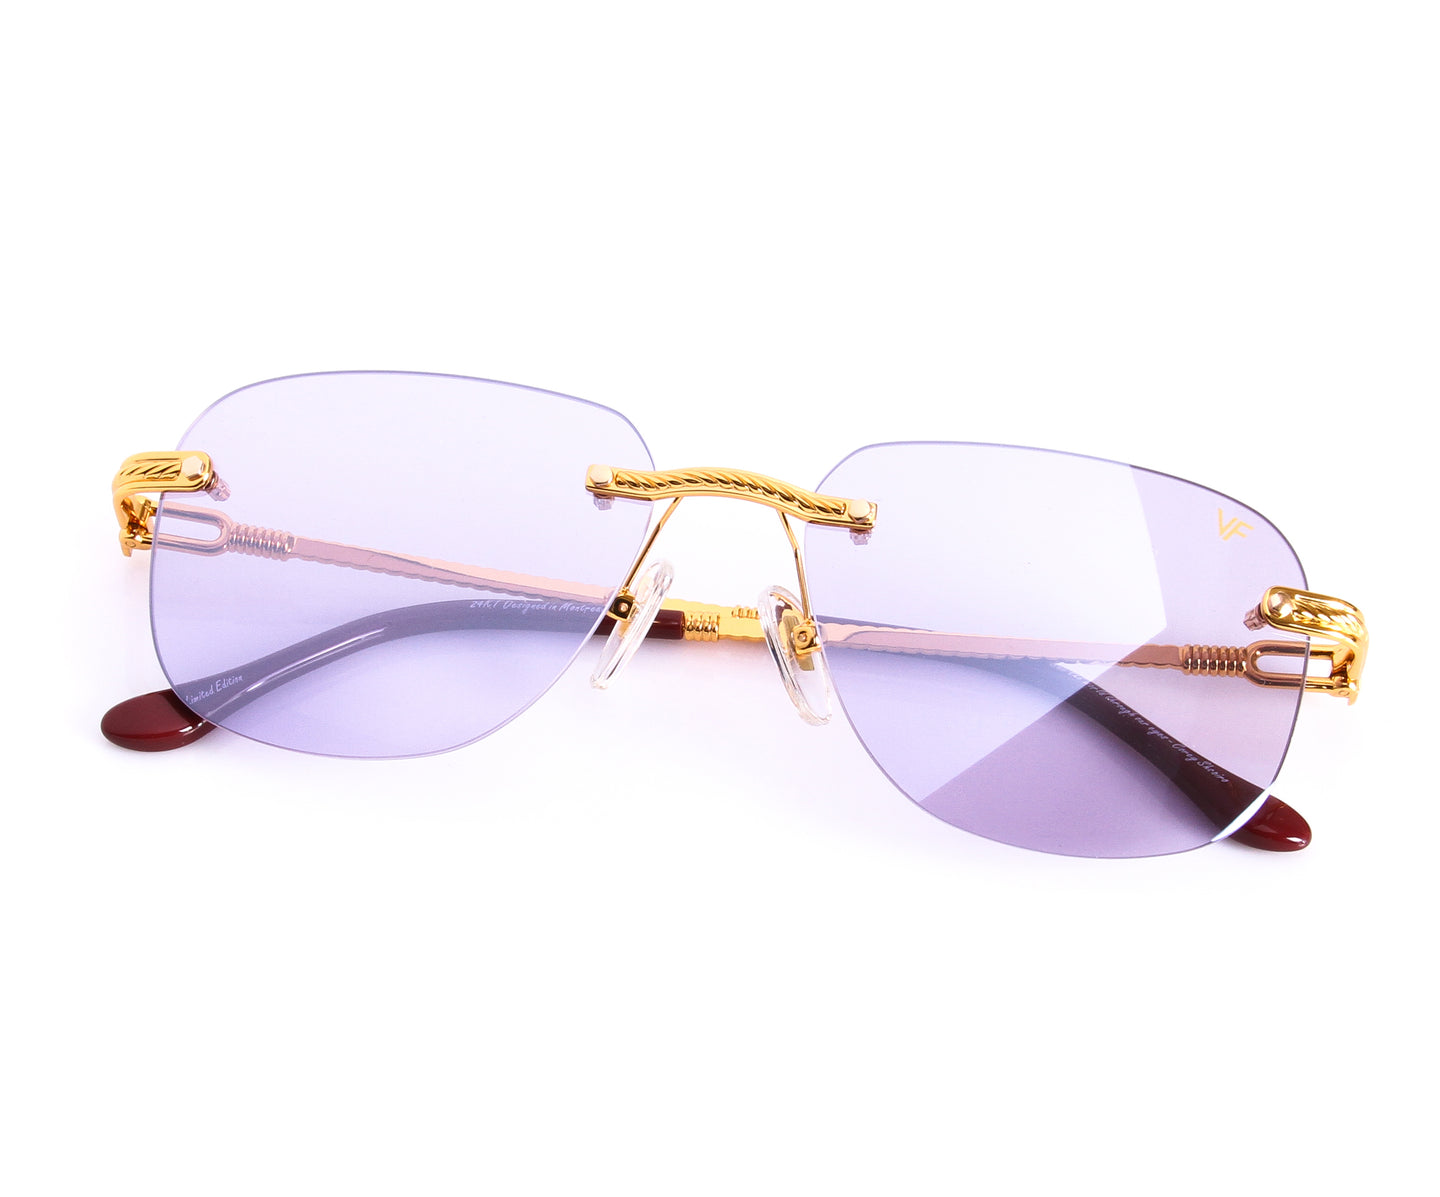 VF Hustler Drill Mount 24KT Gold (Light Purple), VF Drill Mount , glasses frames, eyeglasses online, eyeglass frames, mens glasses, womens glasses, buy glasses online, designer eyeglasses, vintage sunglasses, retro sunglasses, vintage glasses, sunglass, eyeglass, glasses, lens, vintage frames company, vf